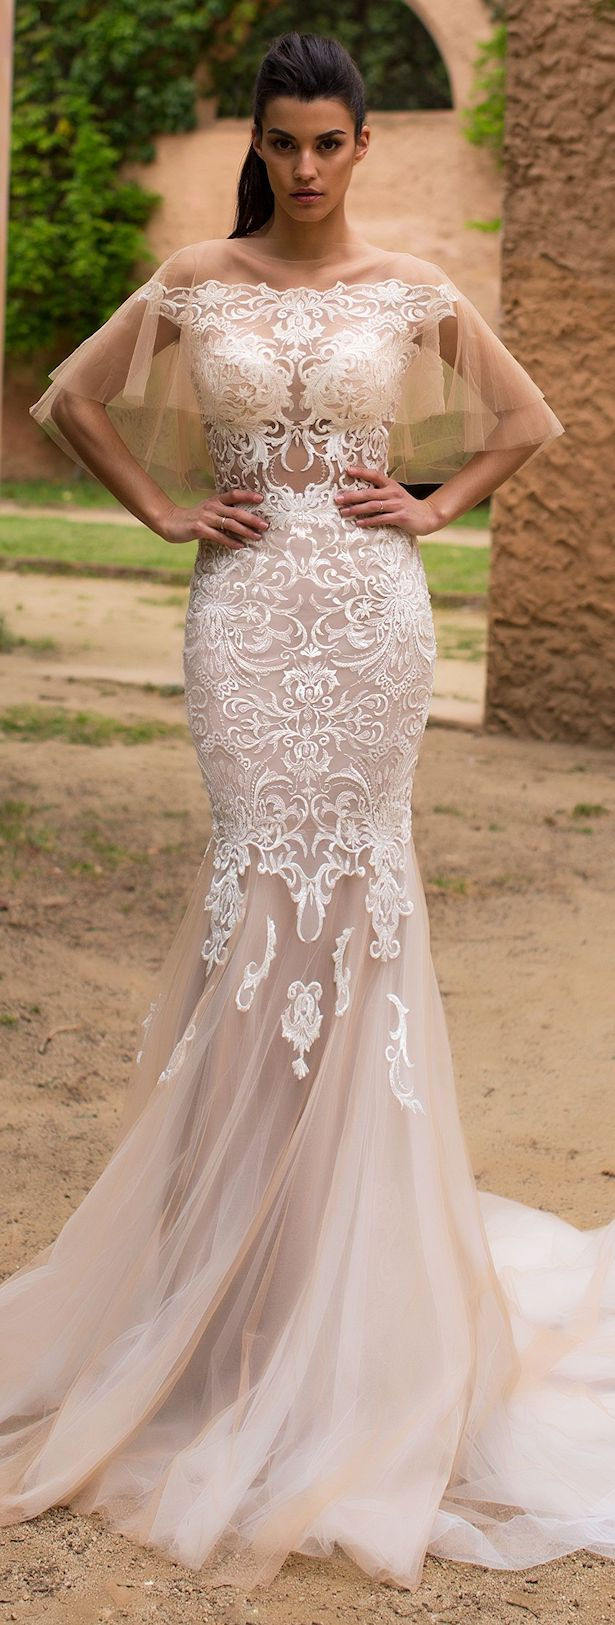 Wedding Dress by Milla Nova White Desire 2017 Bridal Collection - Olivia